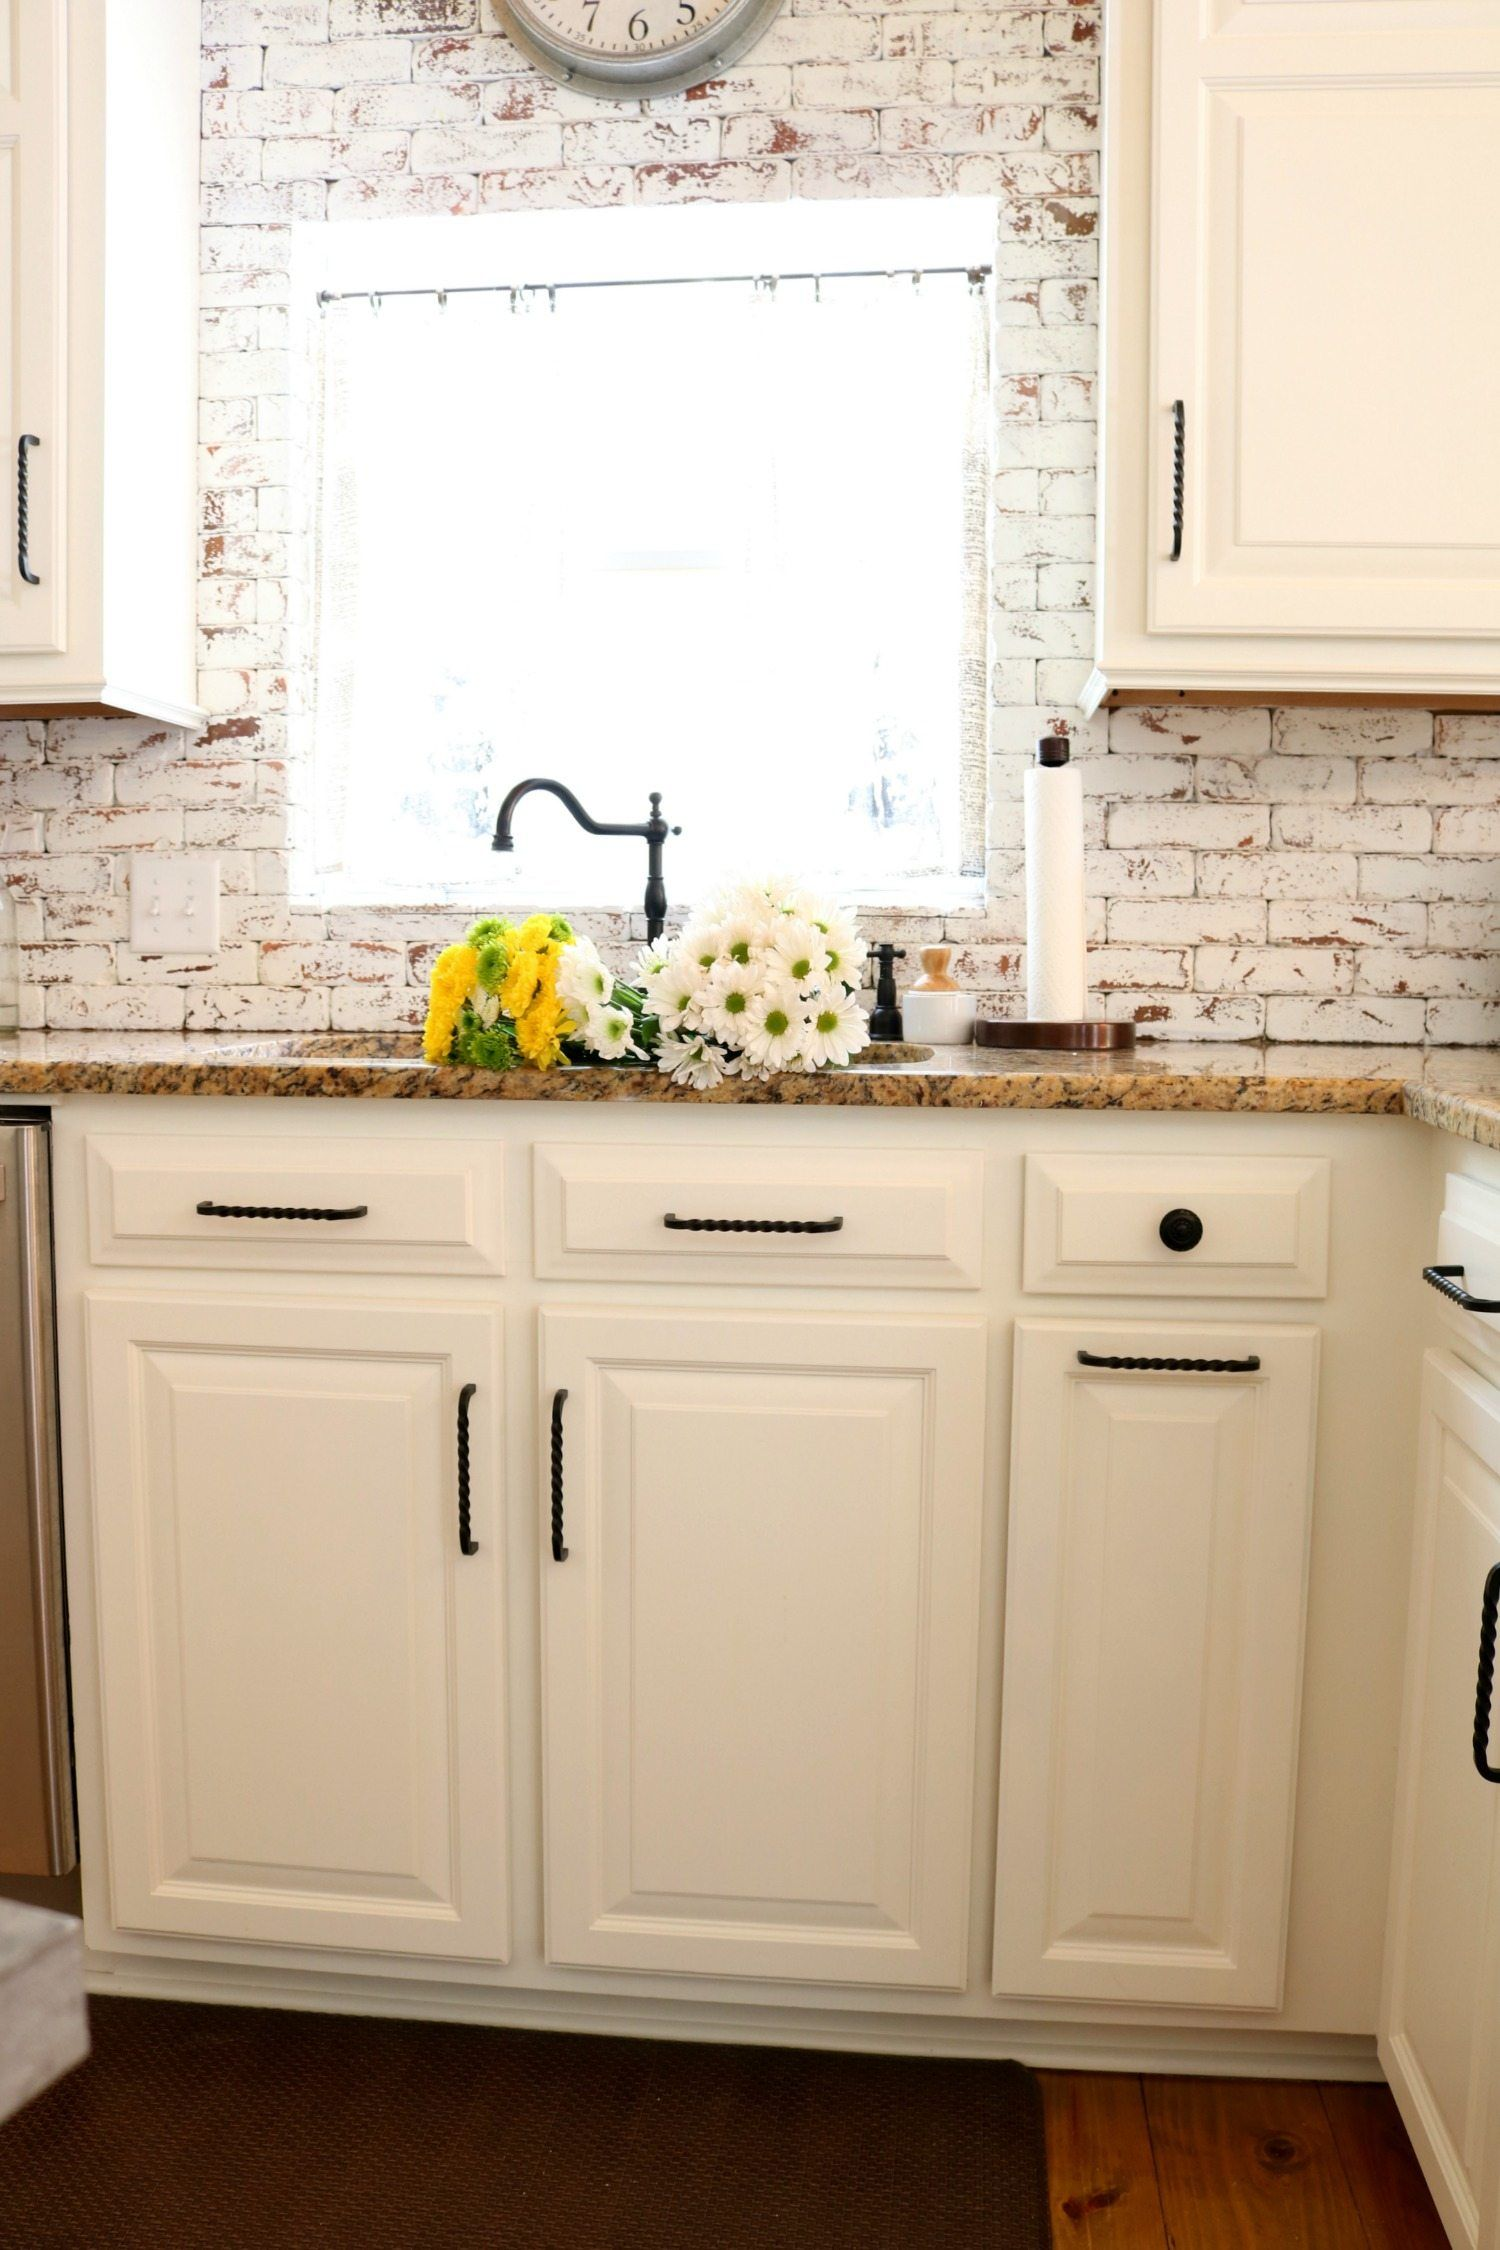 How To Paint Brick Kitchen Cabinets Kitchen Remodel Painted